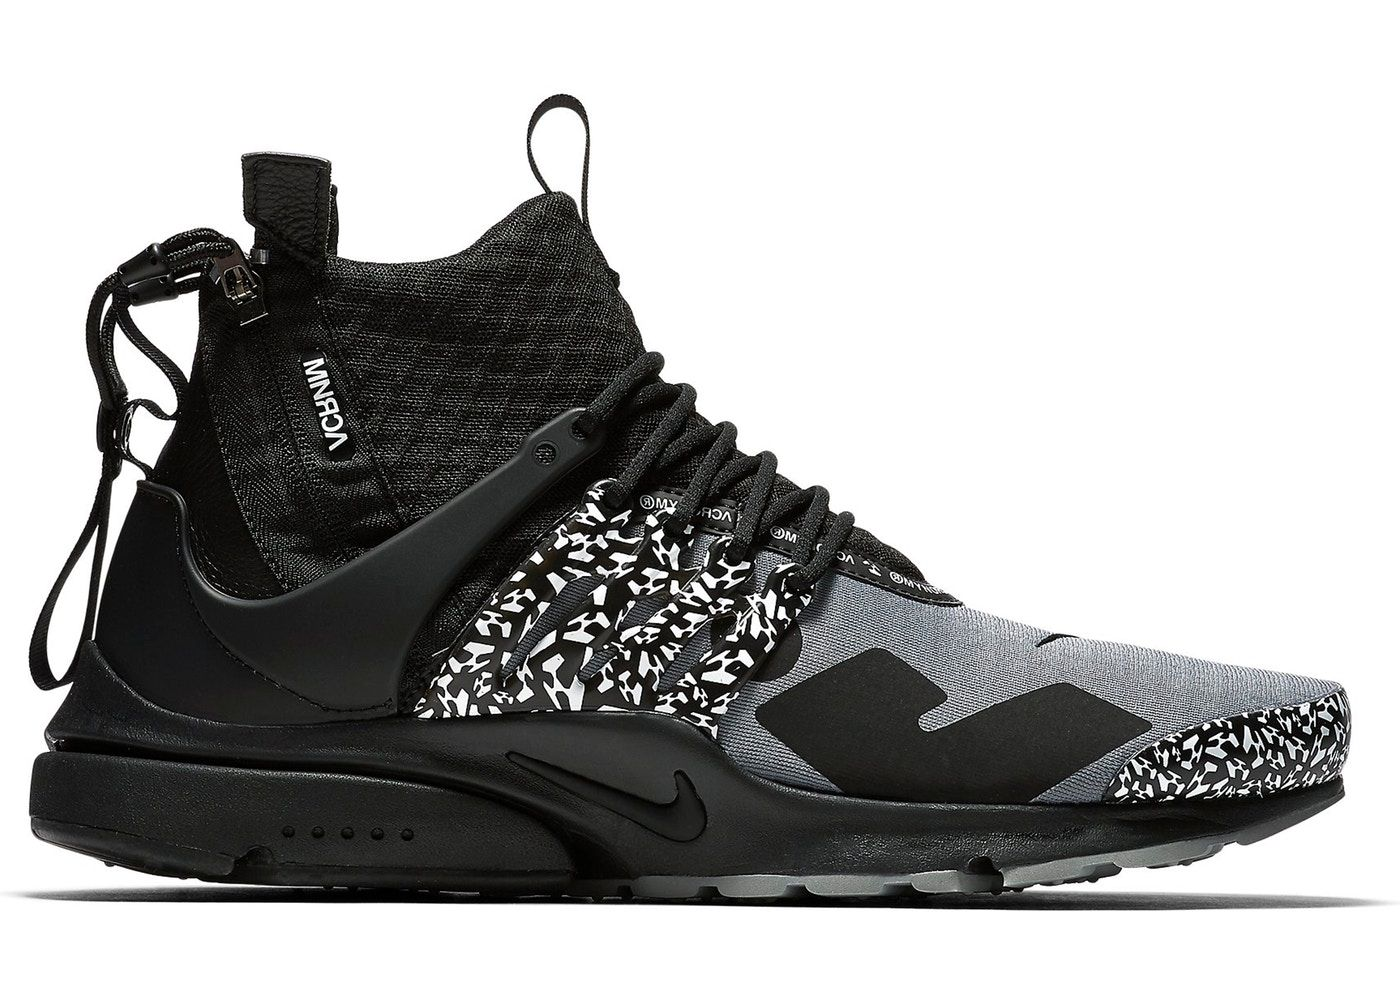 Nike Presto Mid Acronym Cool Grey in 2019 | Sneakers ...